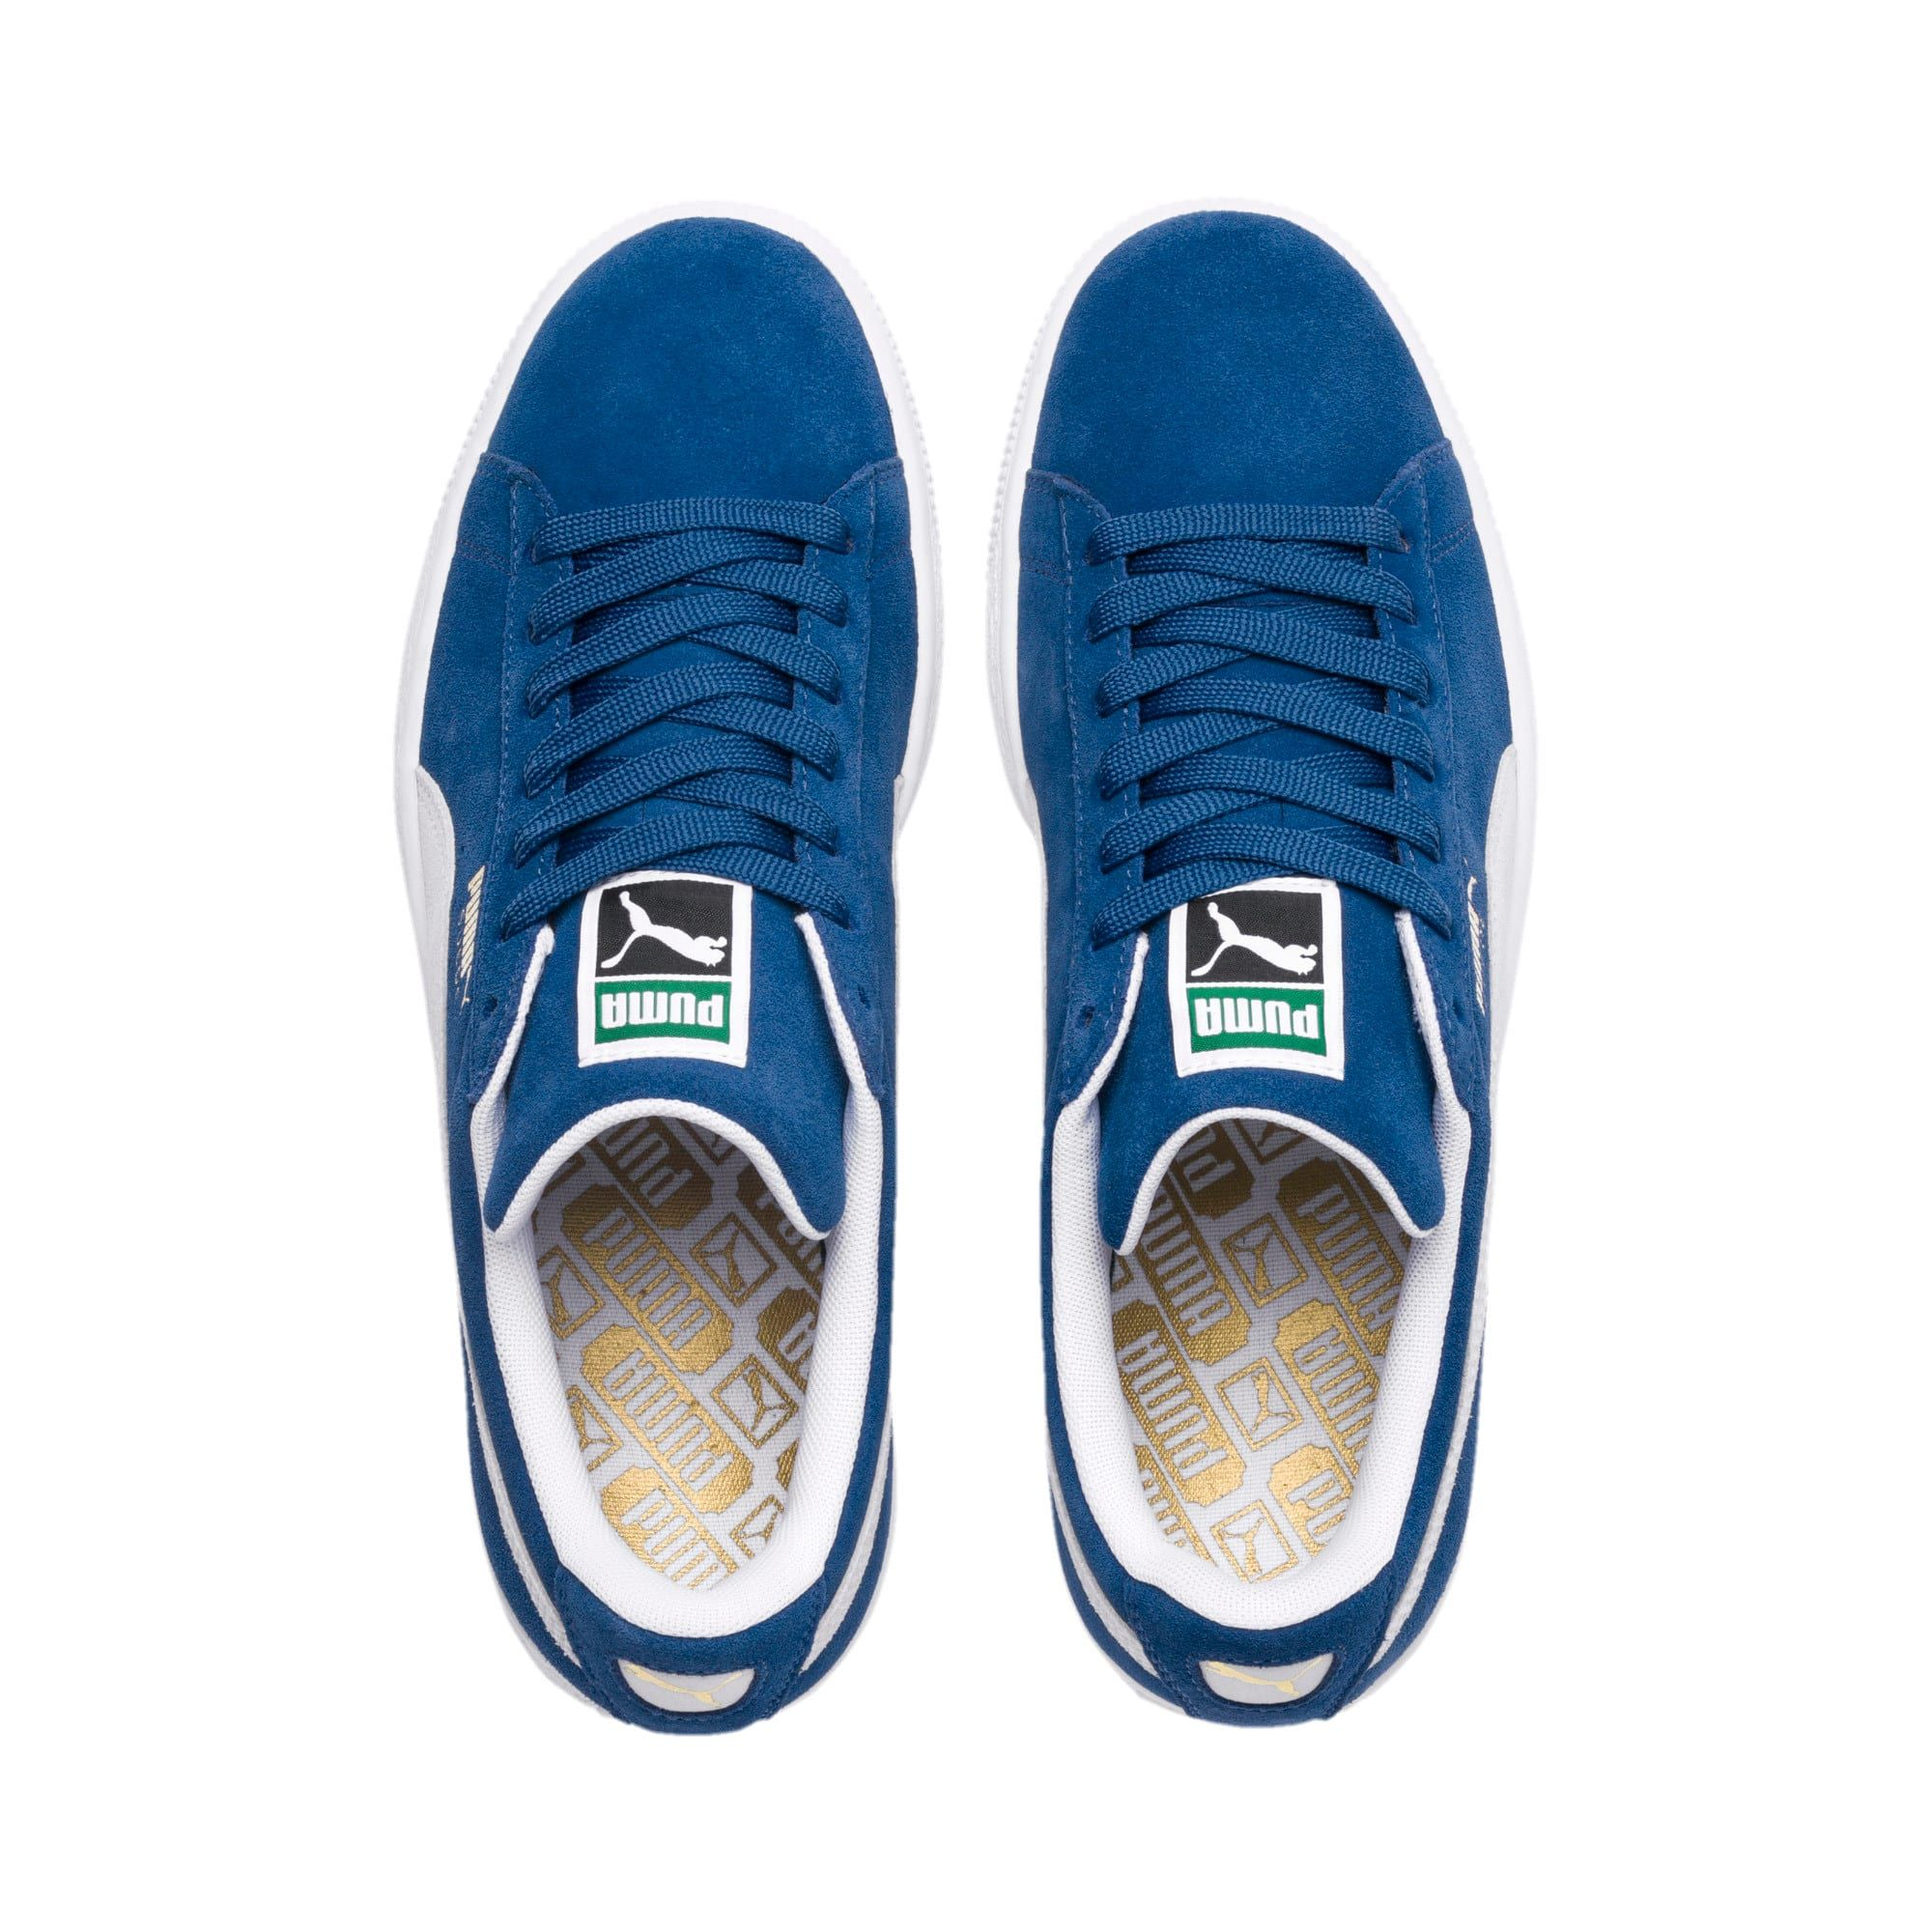 Suede Classic+ Sneakers | Puma suede, Classic sneakers, Best